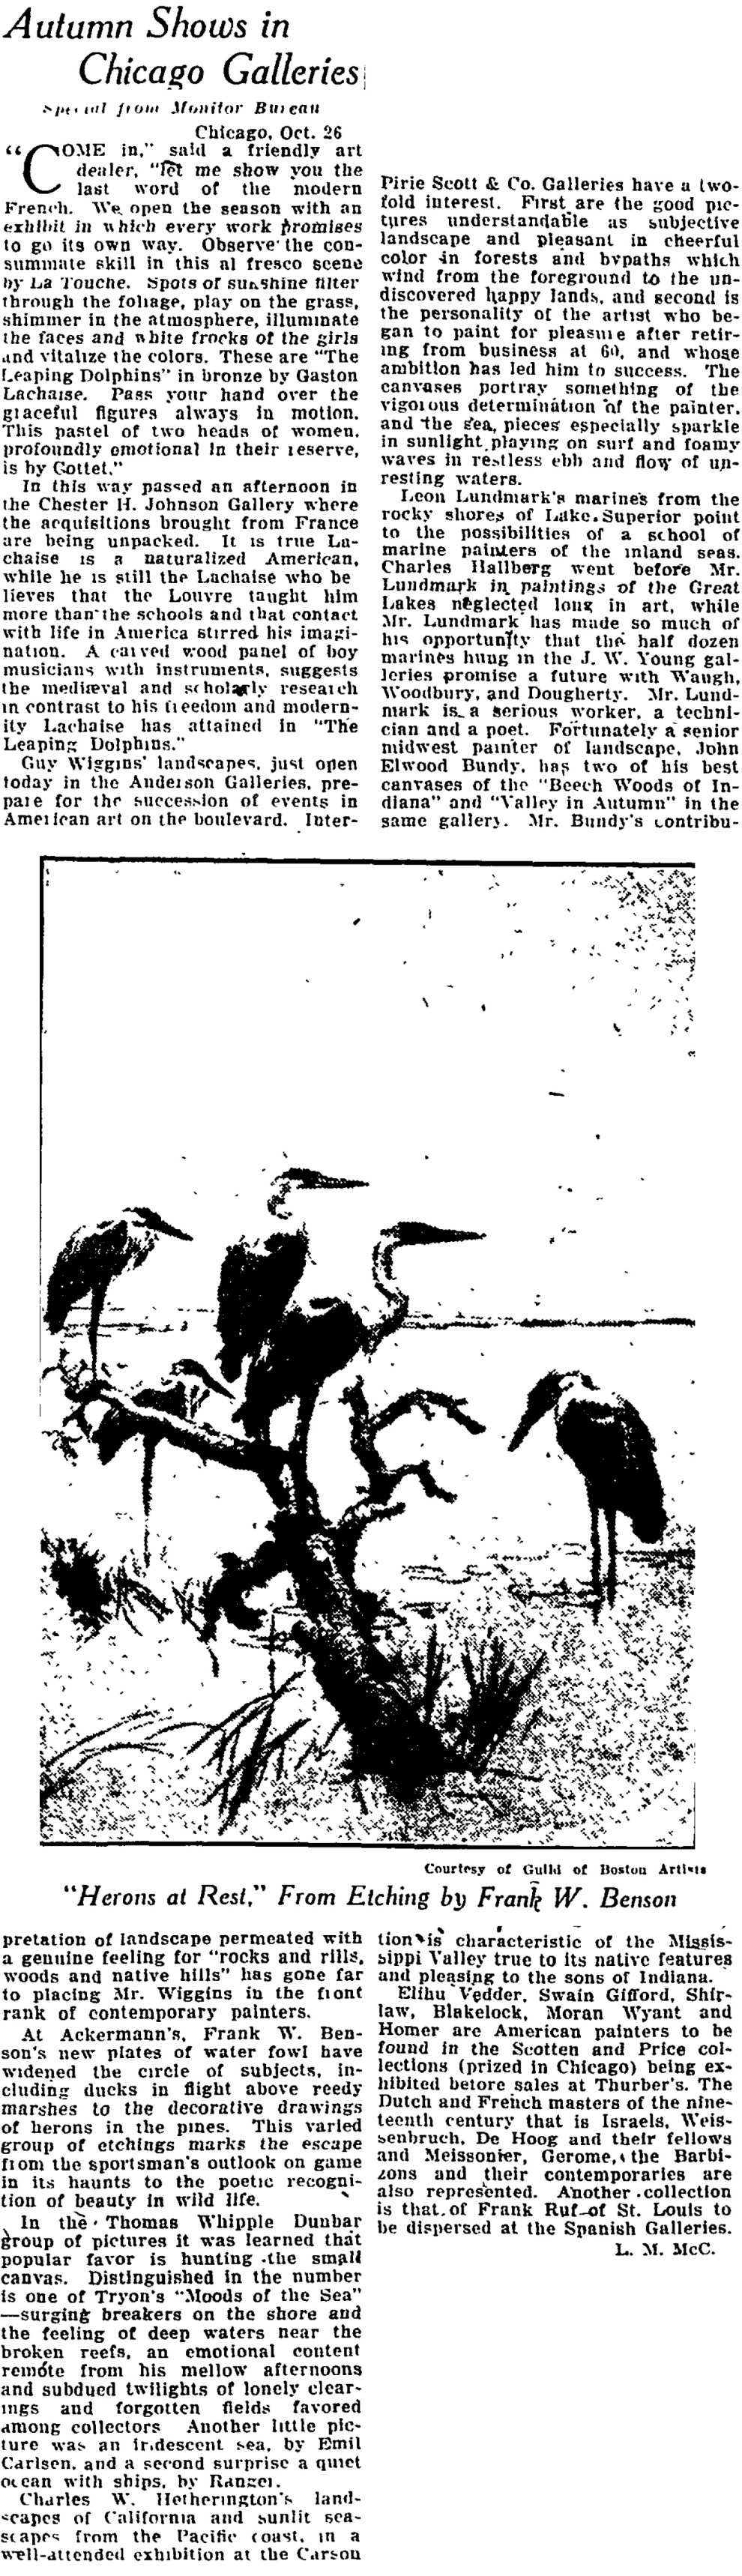 """The Christian Science Monitor, New York, NY, """"Autumn Shows in Chicago Galleries"""", October 29, 1923, page 14, not illustrated"""